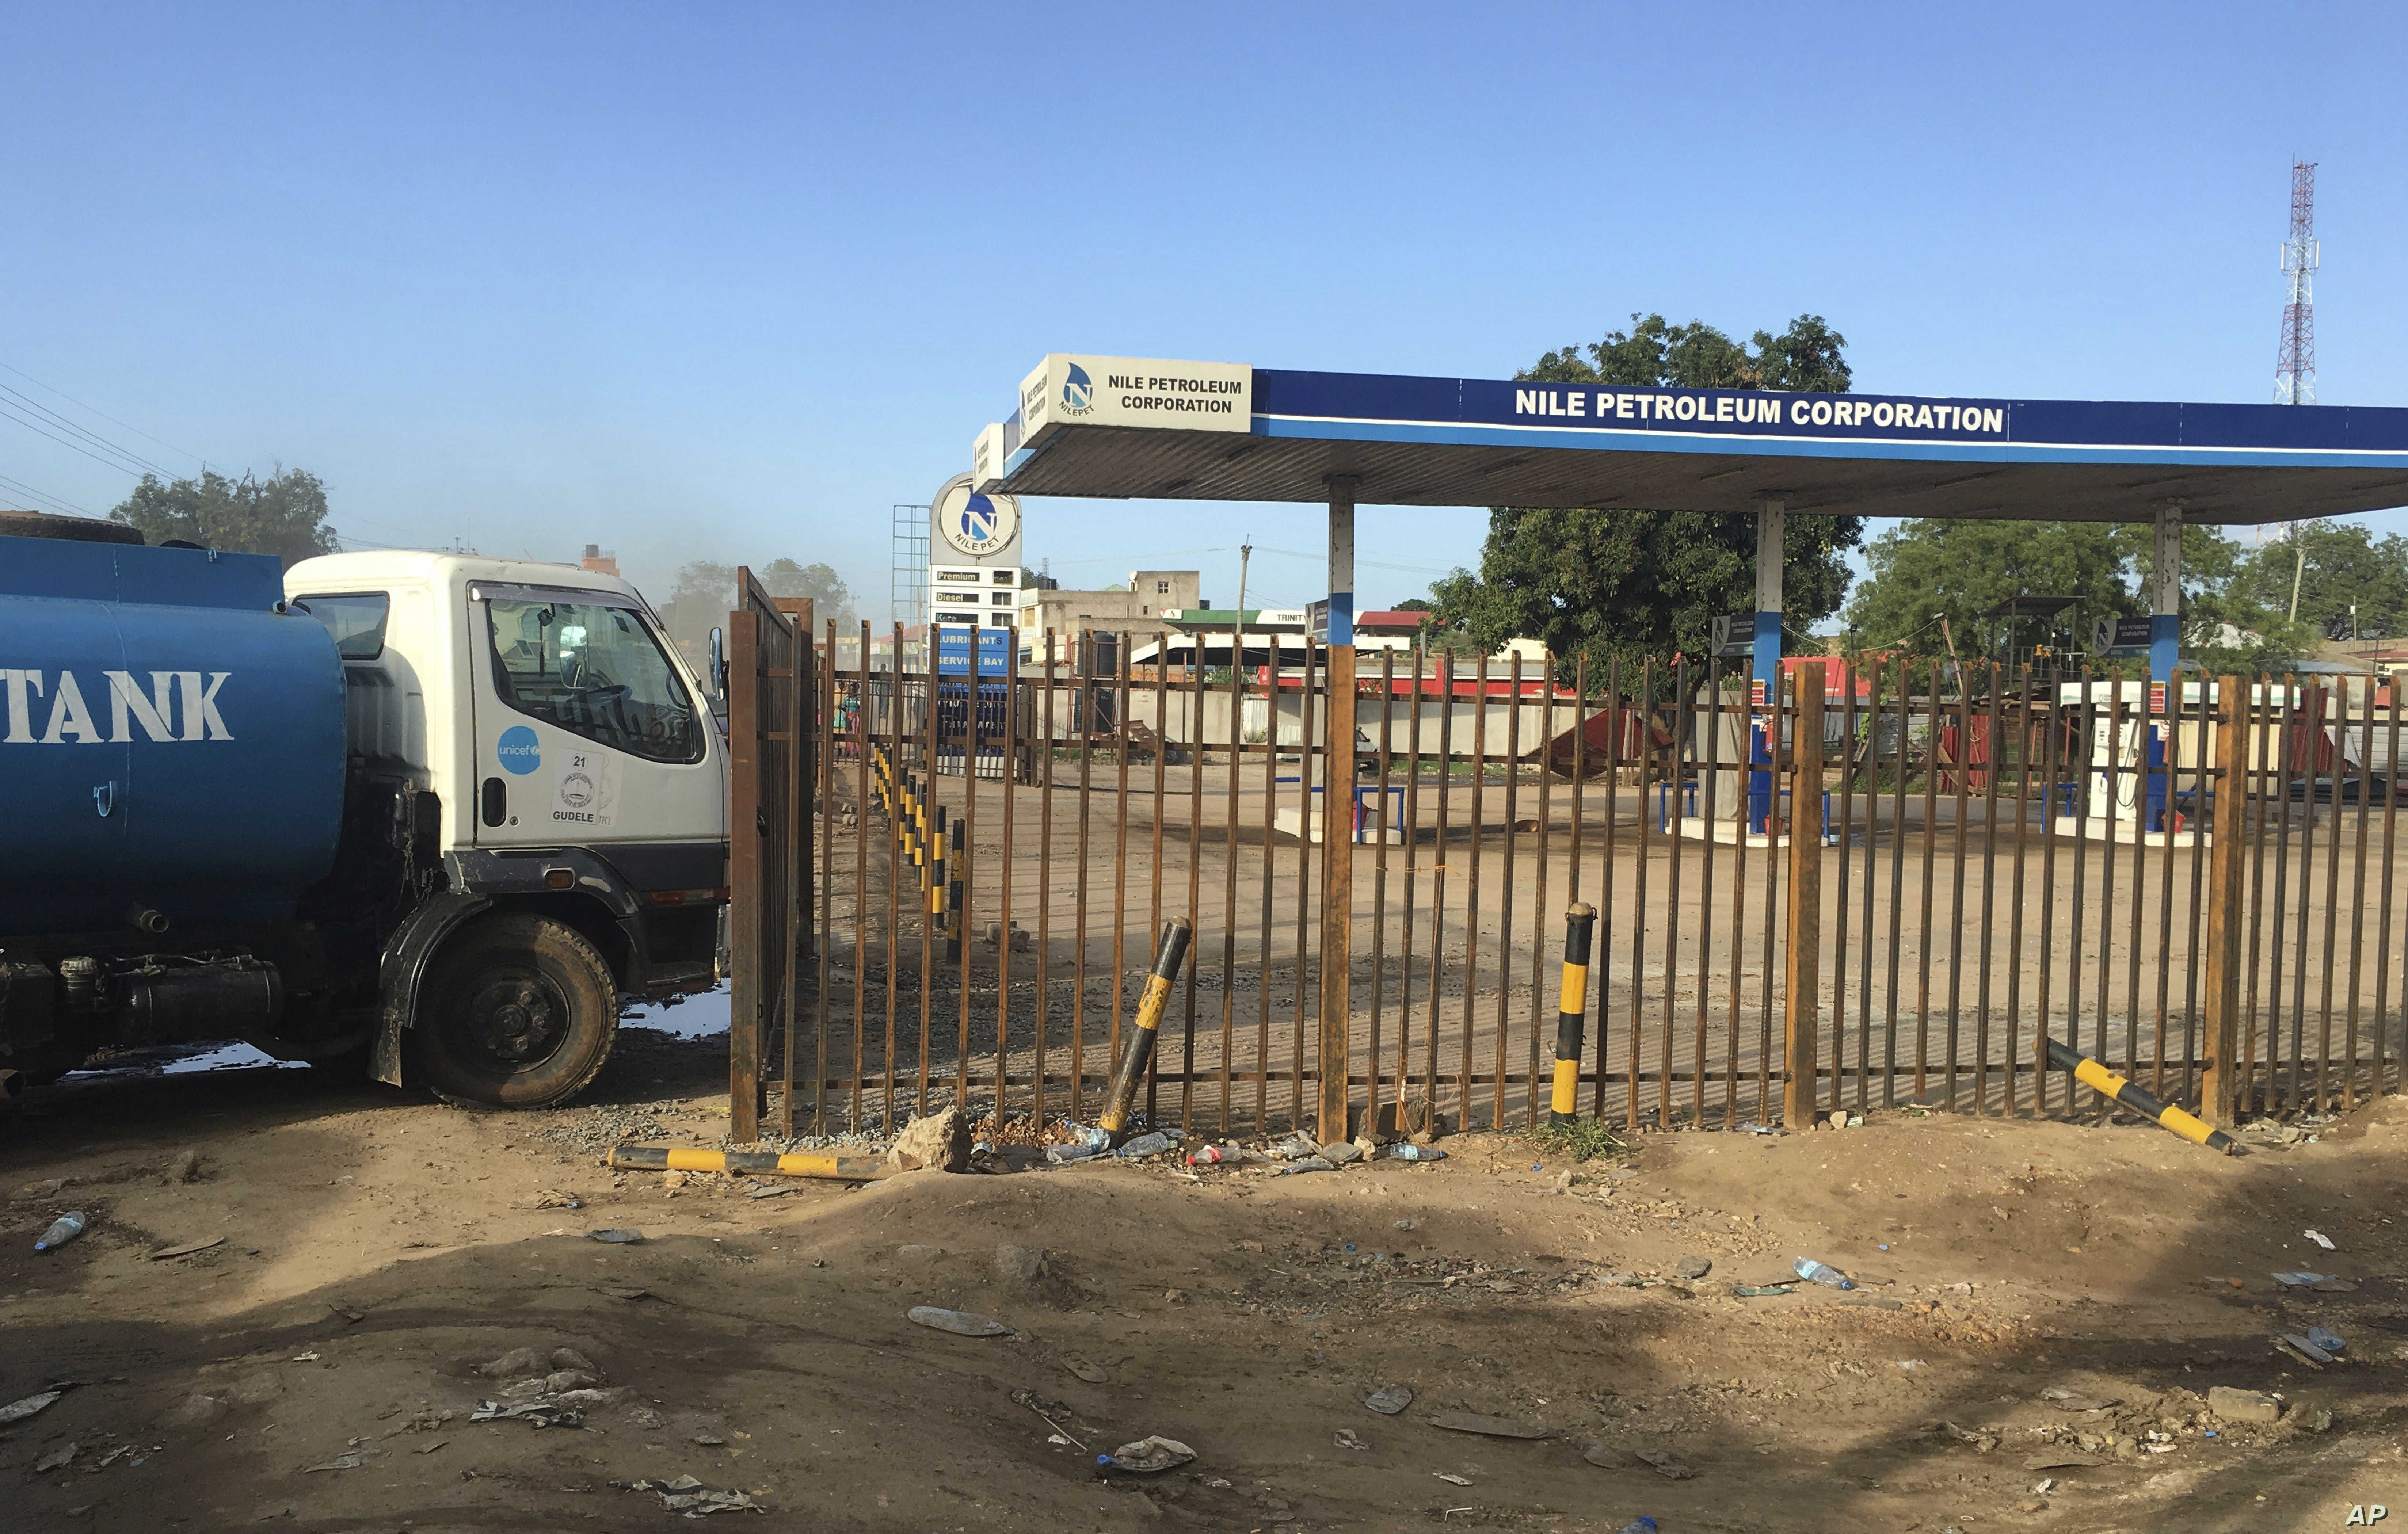 FILE - A truck waits outside a petrol station of the Nile Petroleum Corporation in Juba, South Sudan, Oct. 1, 2017.